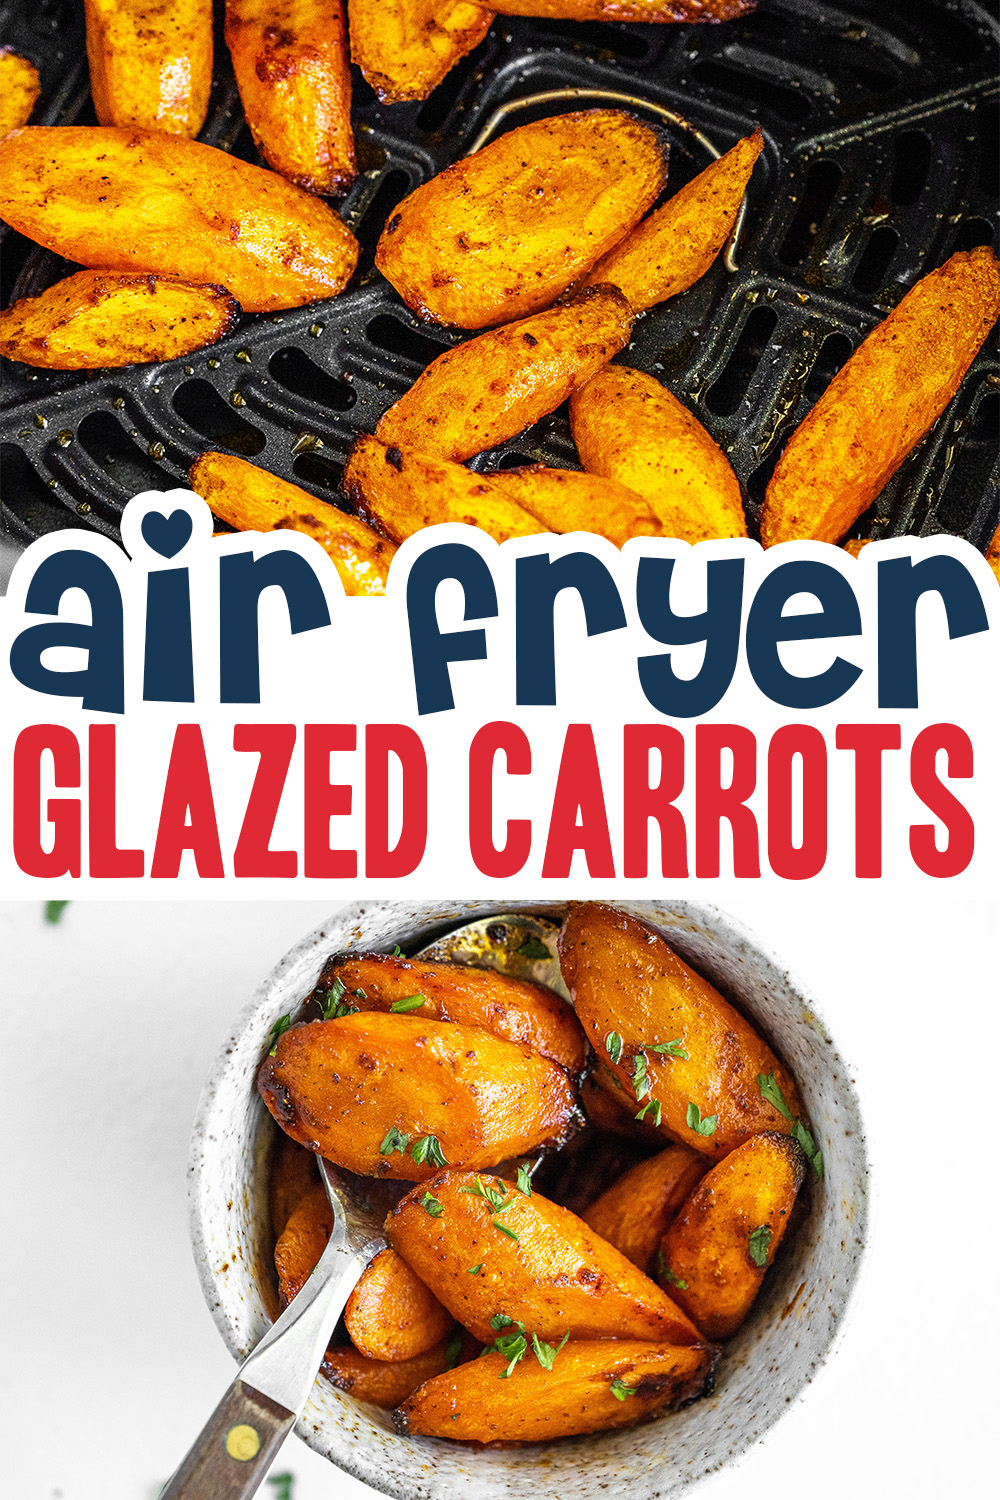 These carrots are coated in a spicy honey glaze for a wonderful blend of sweetness and spice!